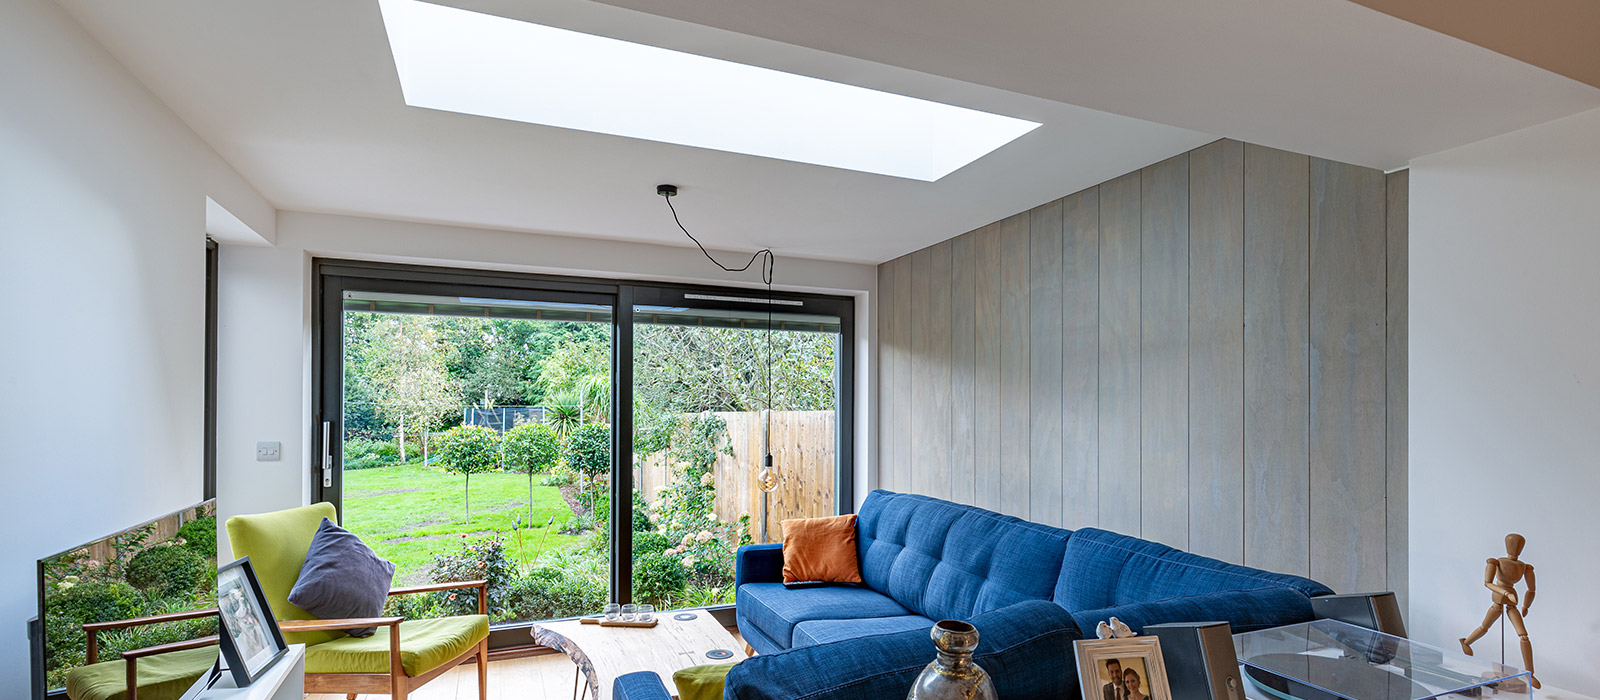 gyd-architecture | contemporary internal cladding